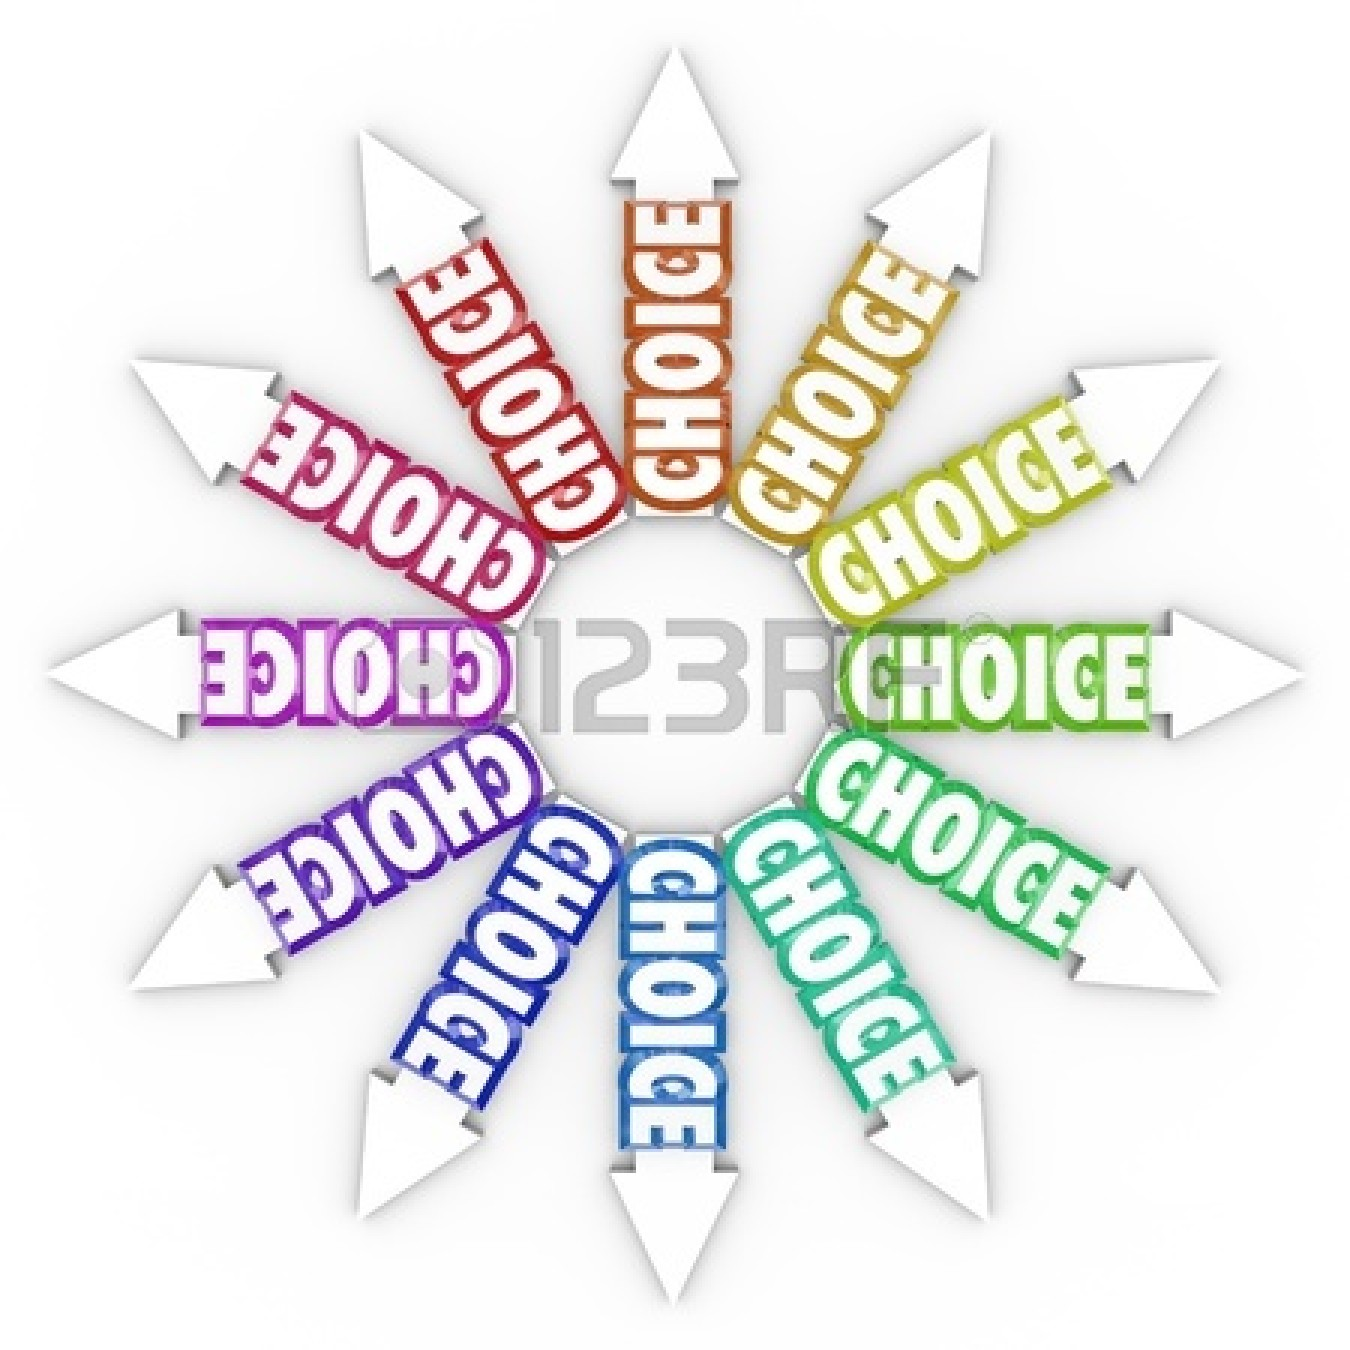 Wor choice clipart banner black and white stock Stock Photo - The word Choice | Clipart Panda - Free Clipart ... banner black and white stock